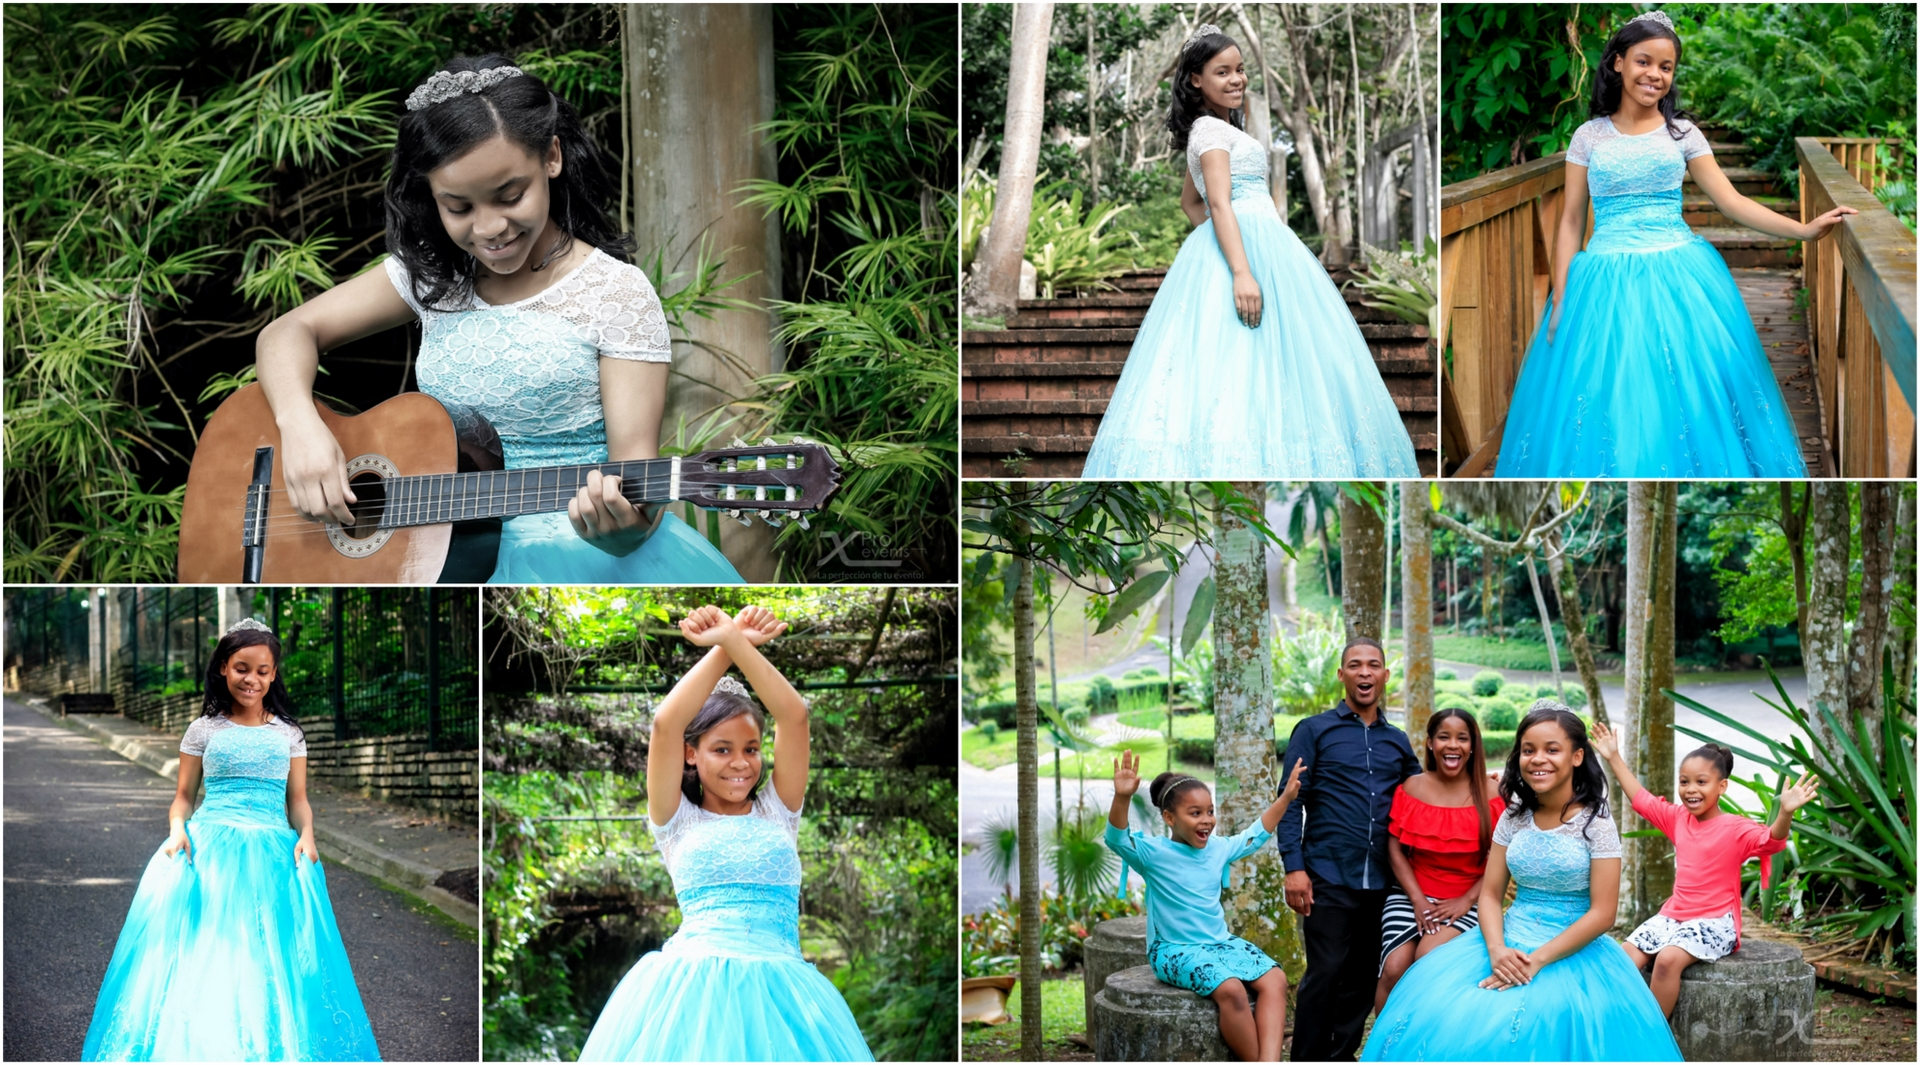 X Pro events Collage - Sesion Raisibell Asuncion - Fotografia